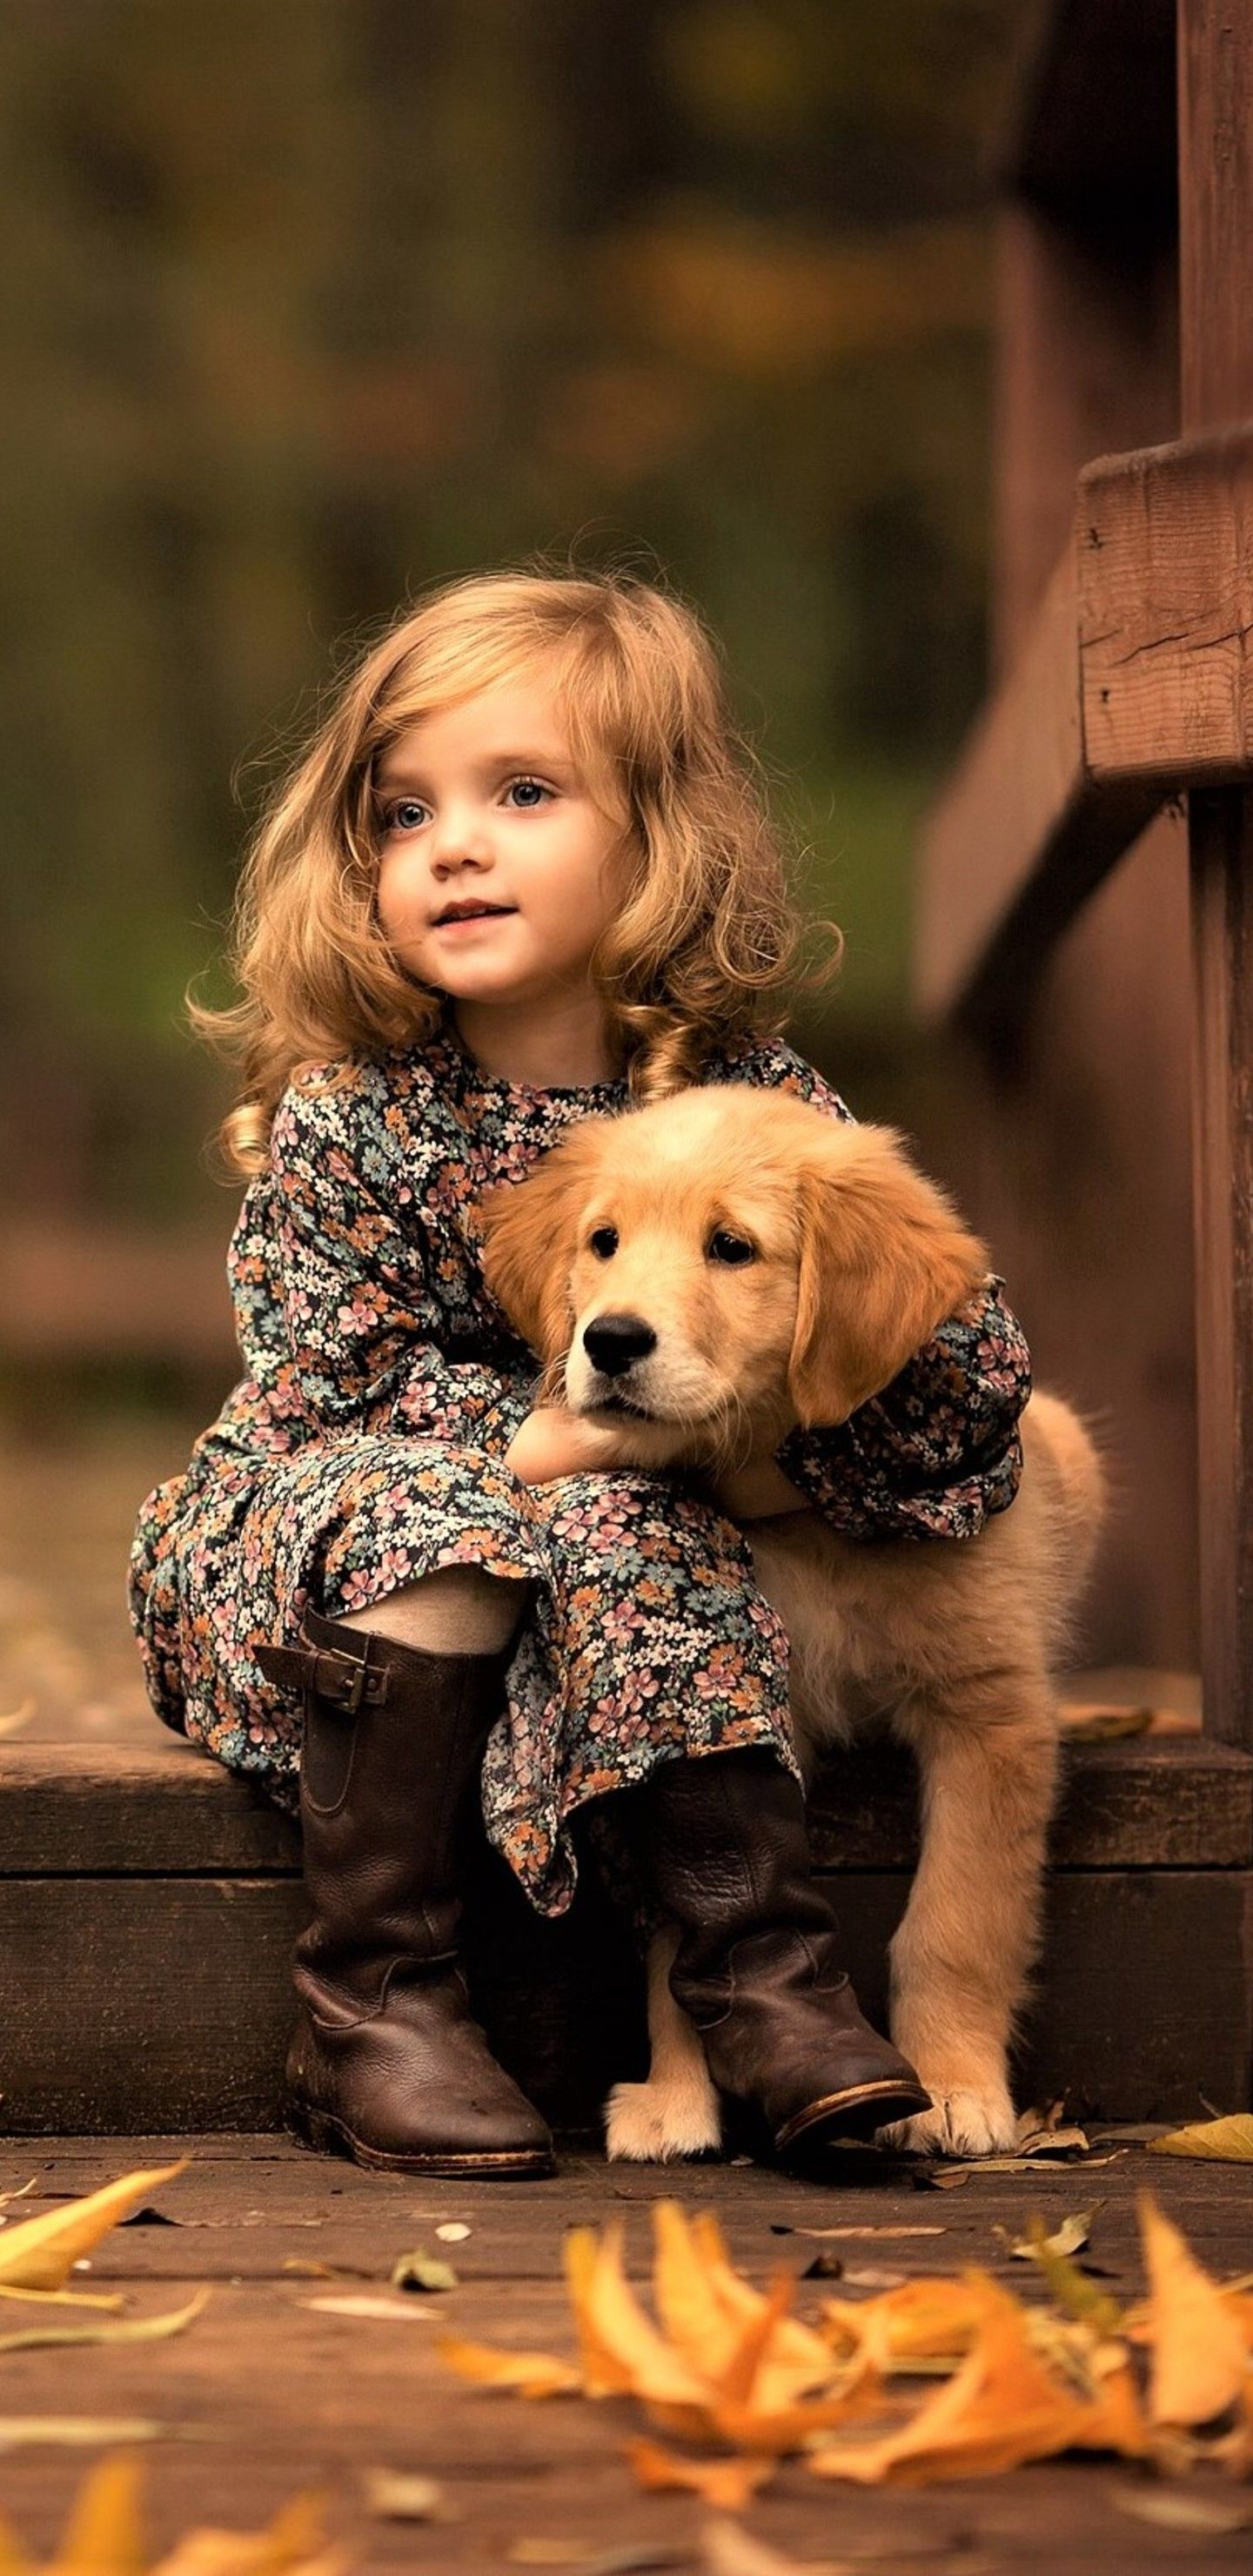 Little Girl With Golden Retriever Puppy In 1440x2960 Resolution